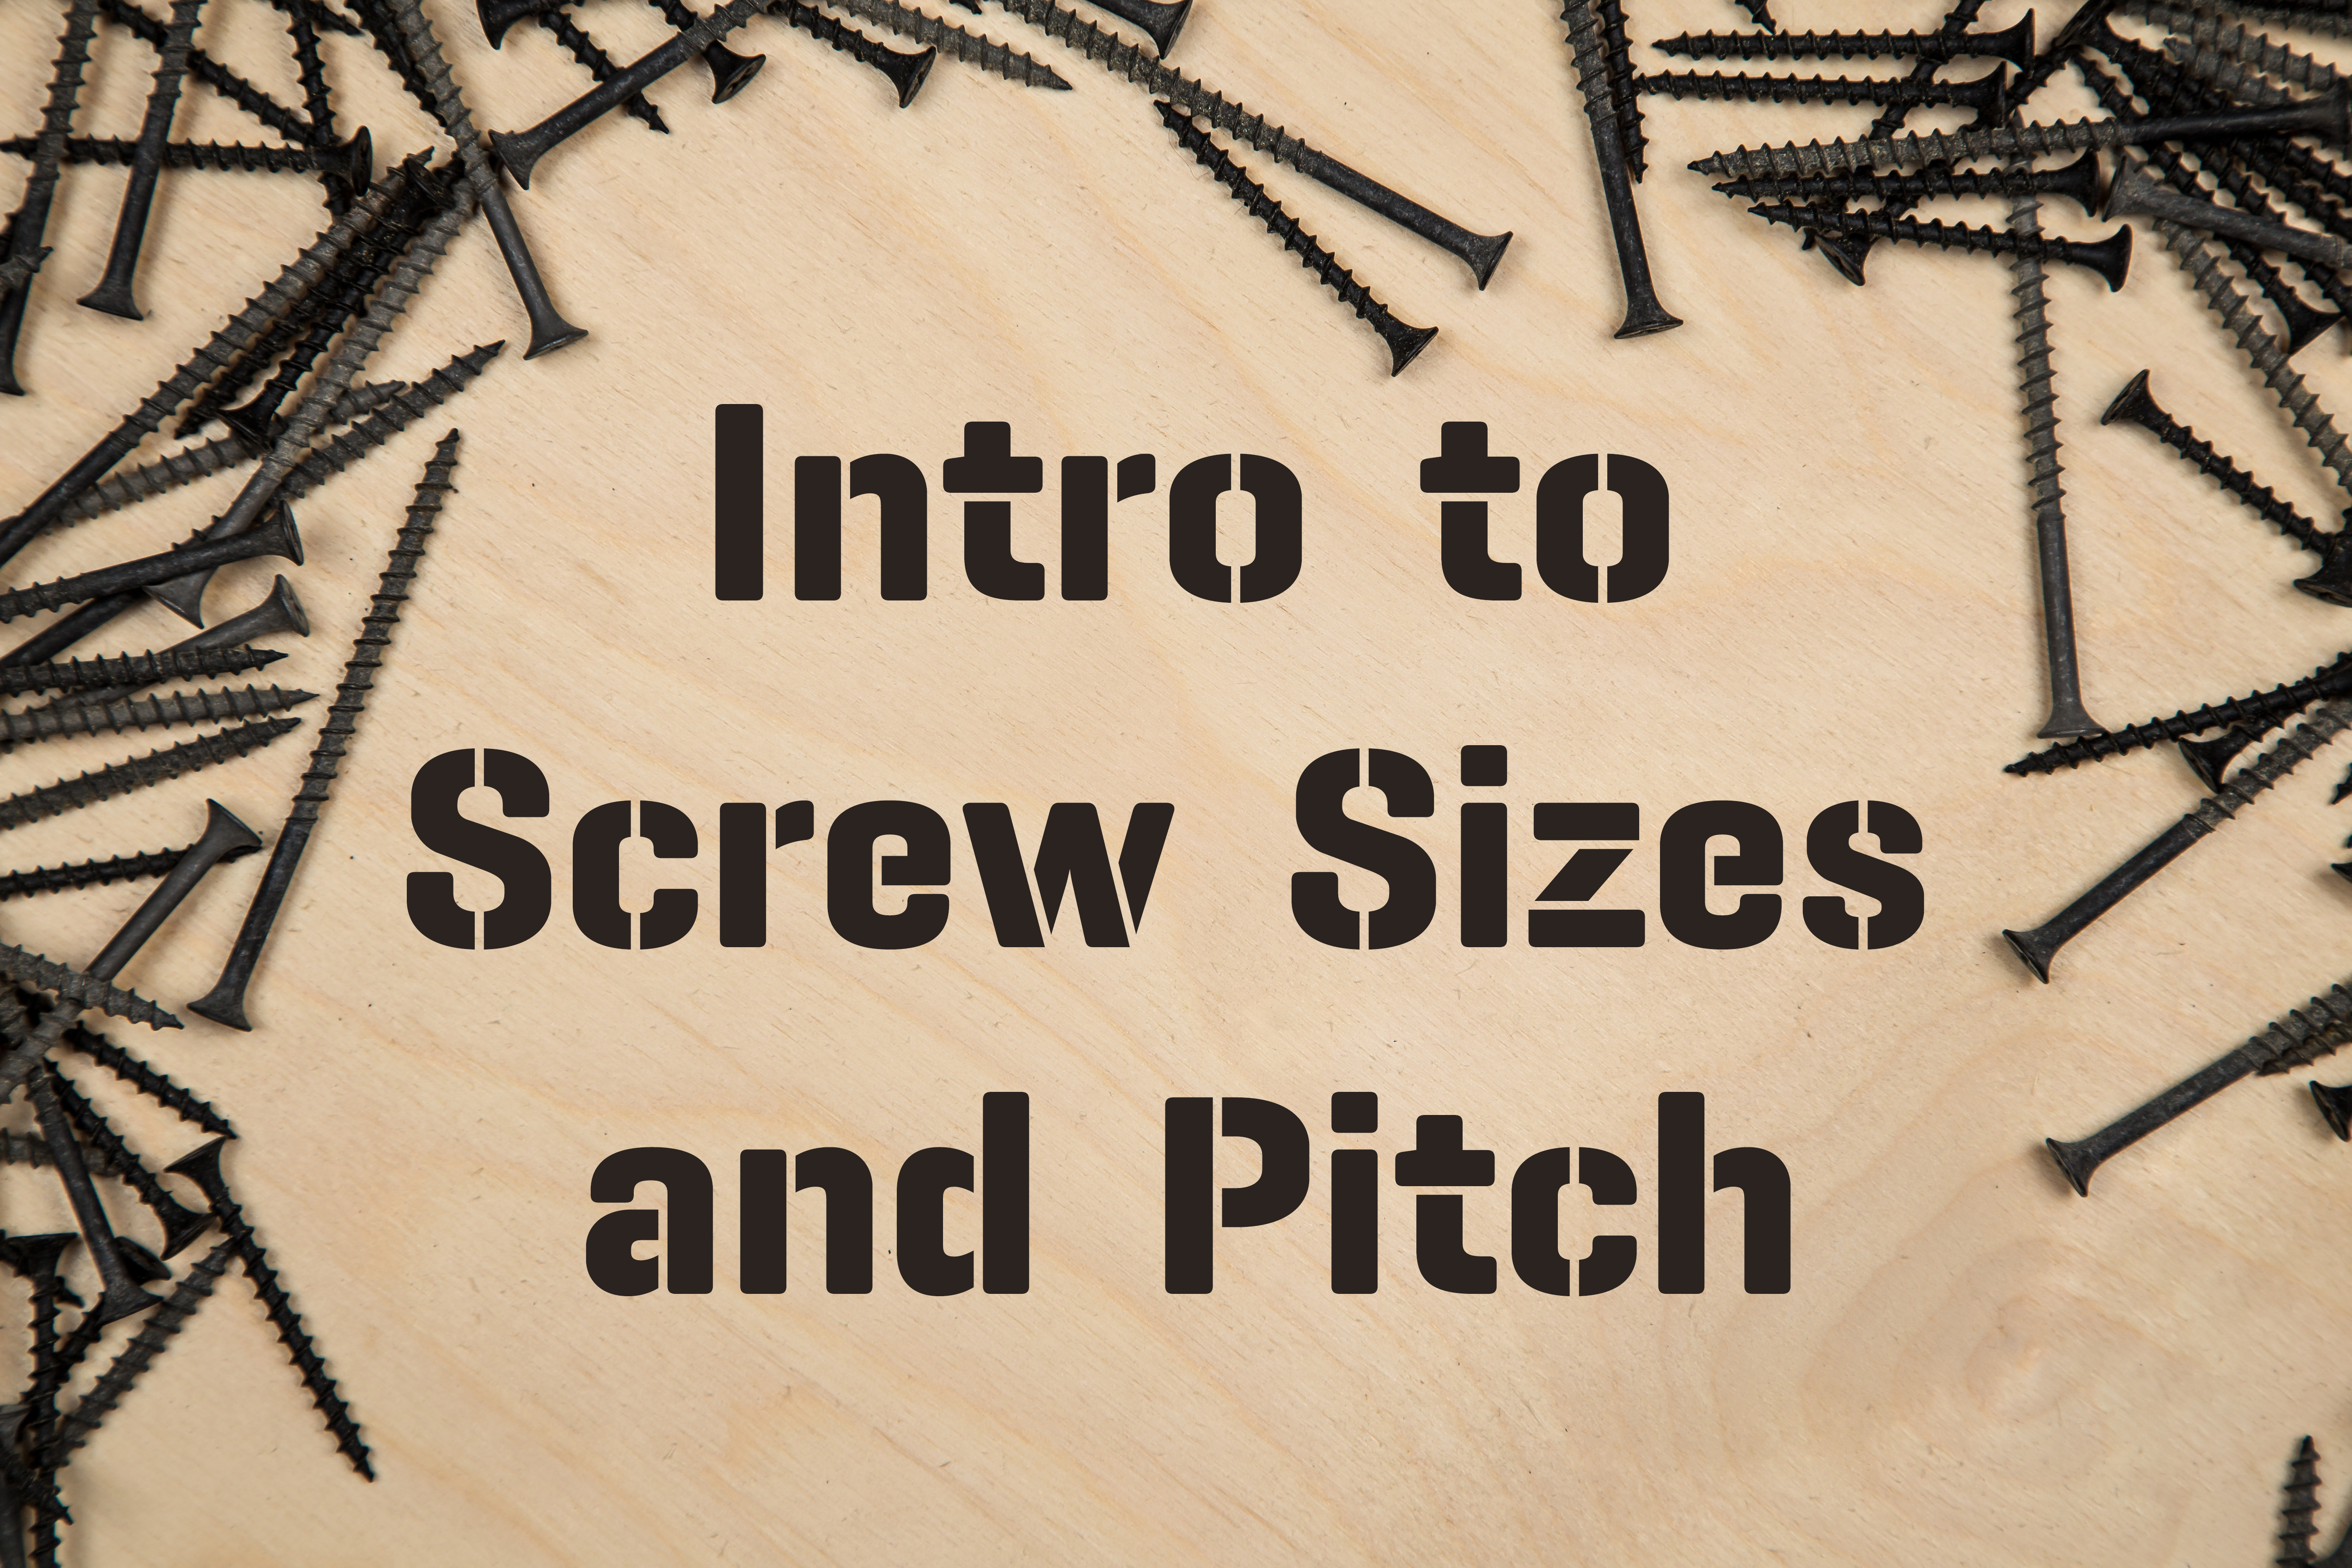 Know Your Screws: An Intro to Thread Pitch